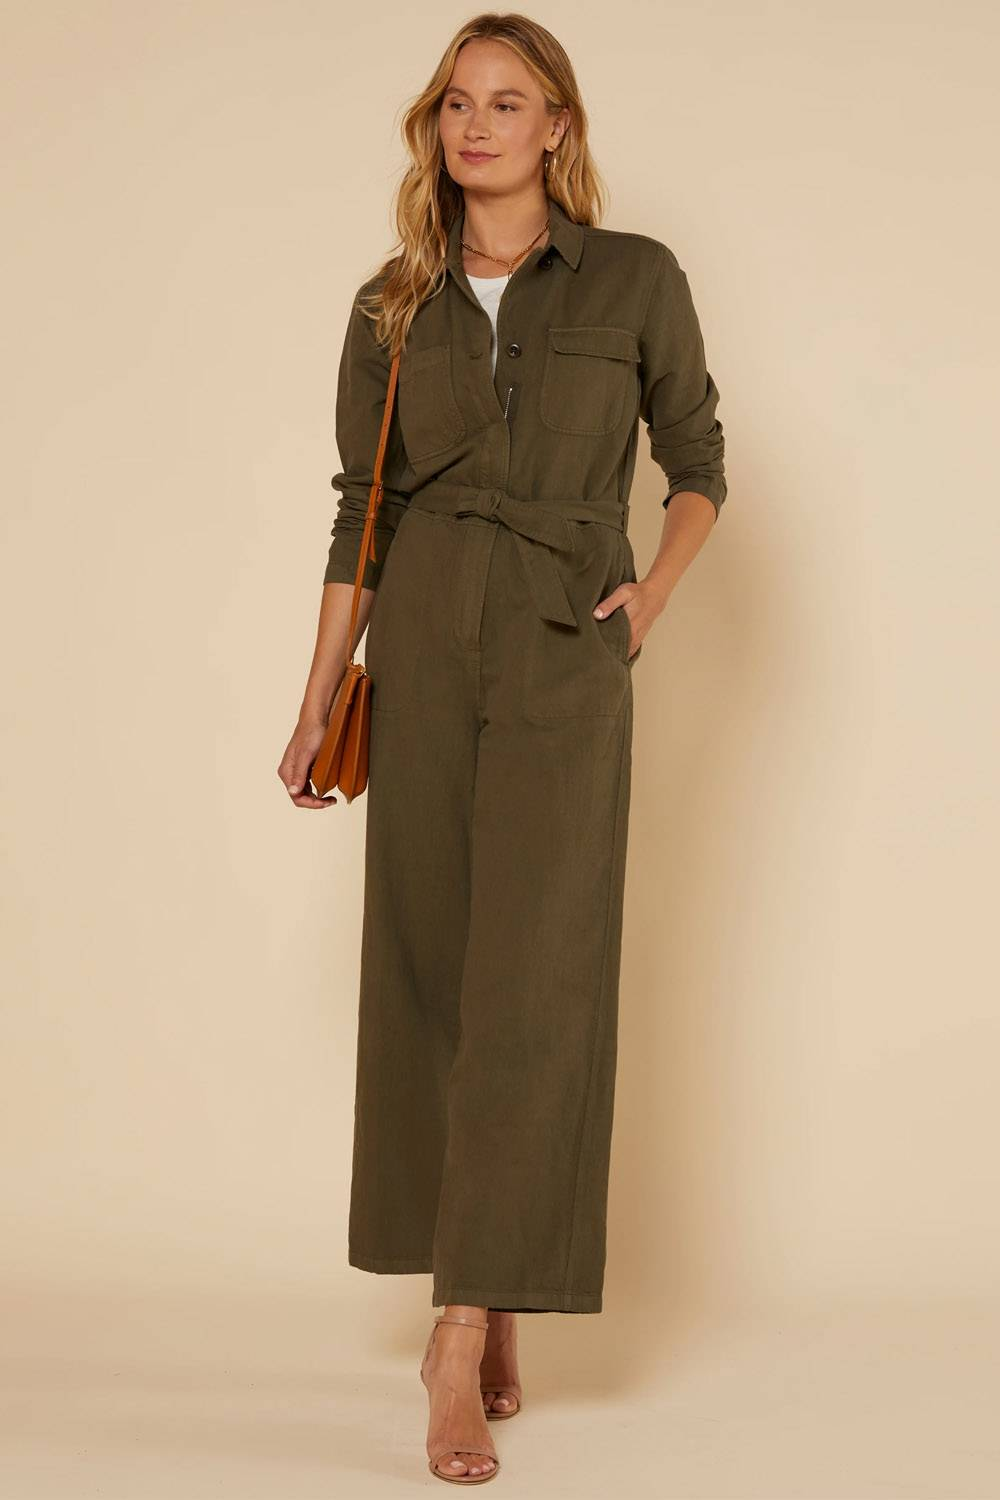 outerknown cheap chic ethical jumpsuit